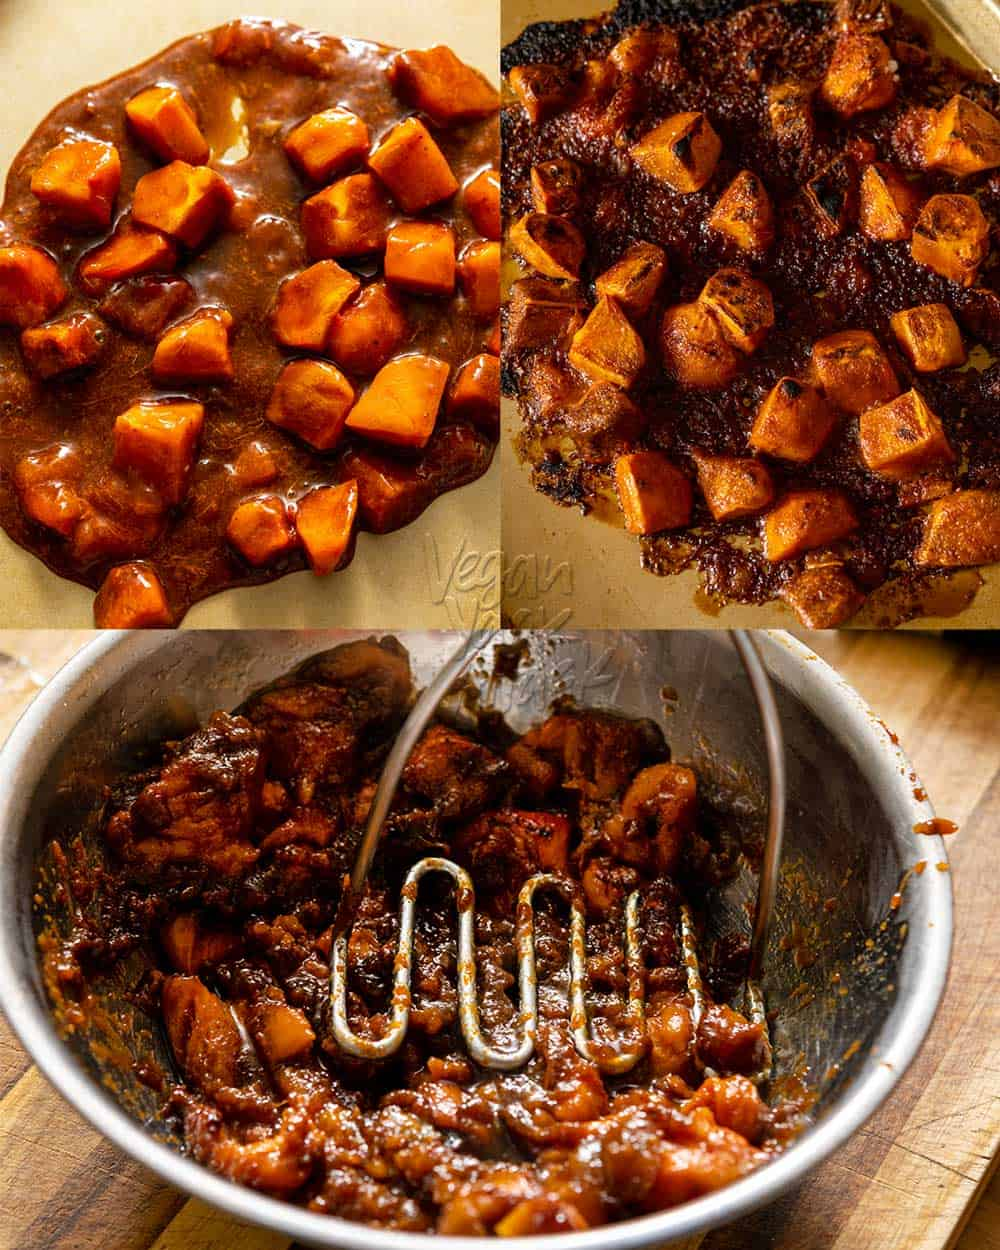 Image collage of roasting persimmons in brown sugar, then mashing them